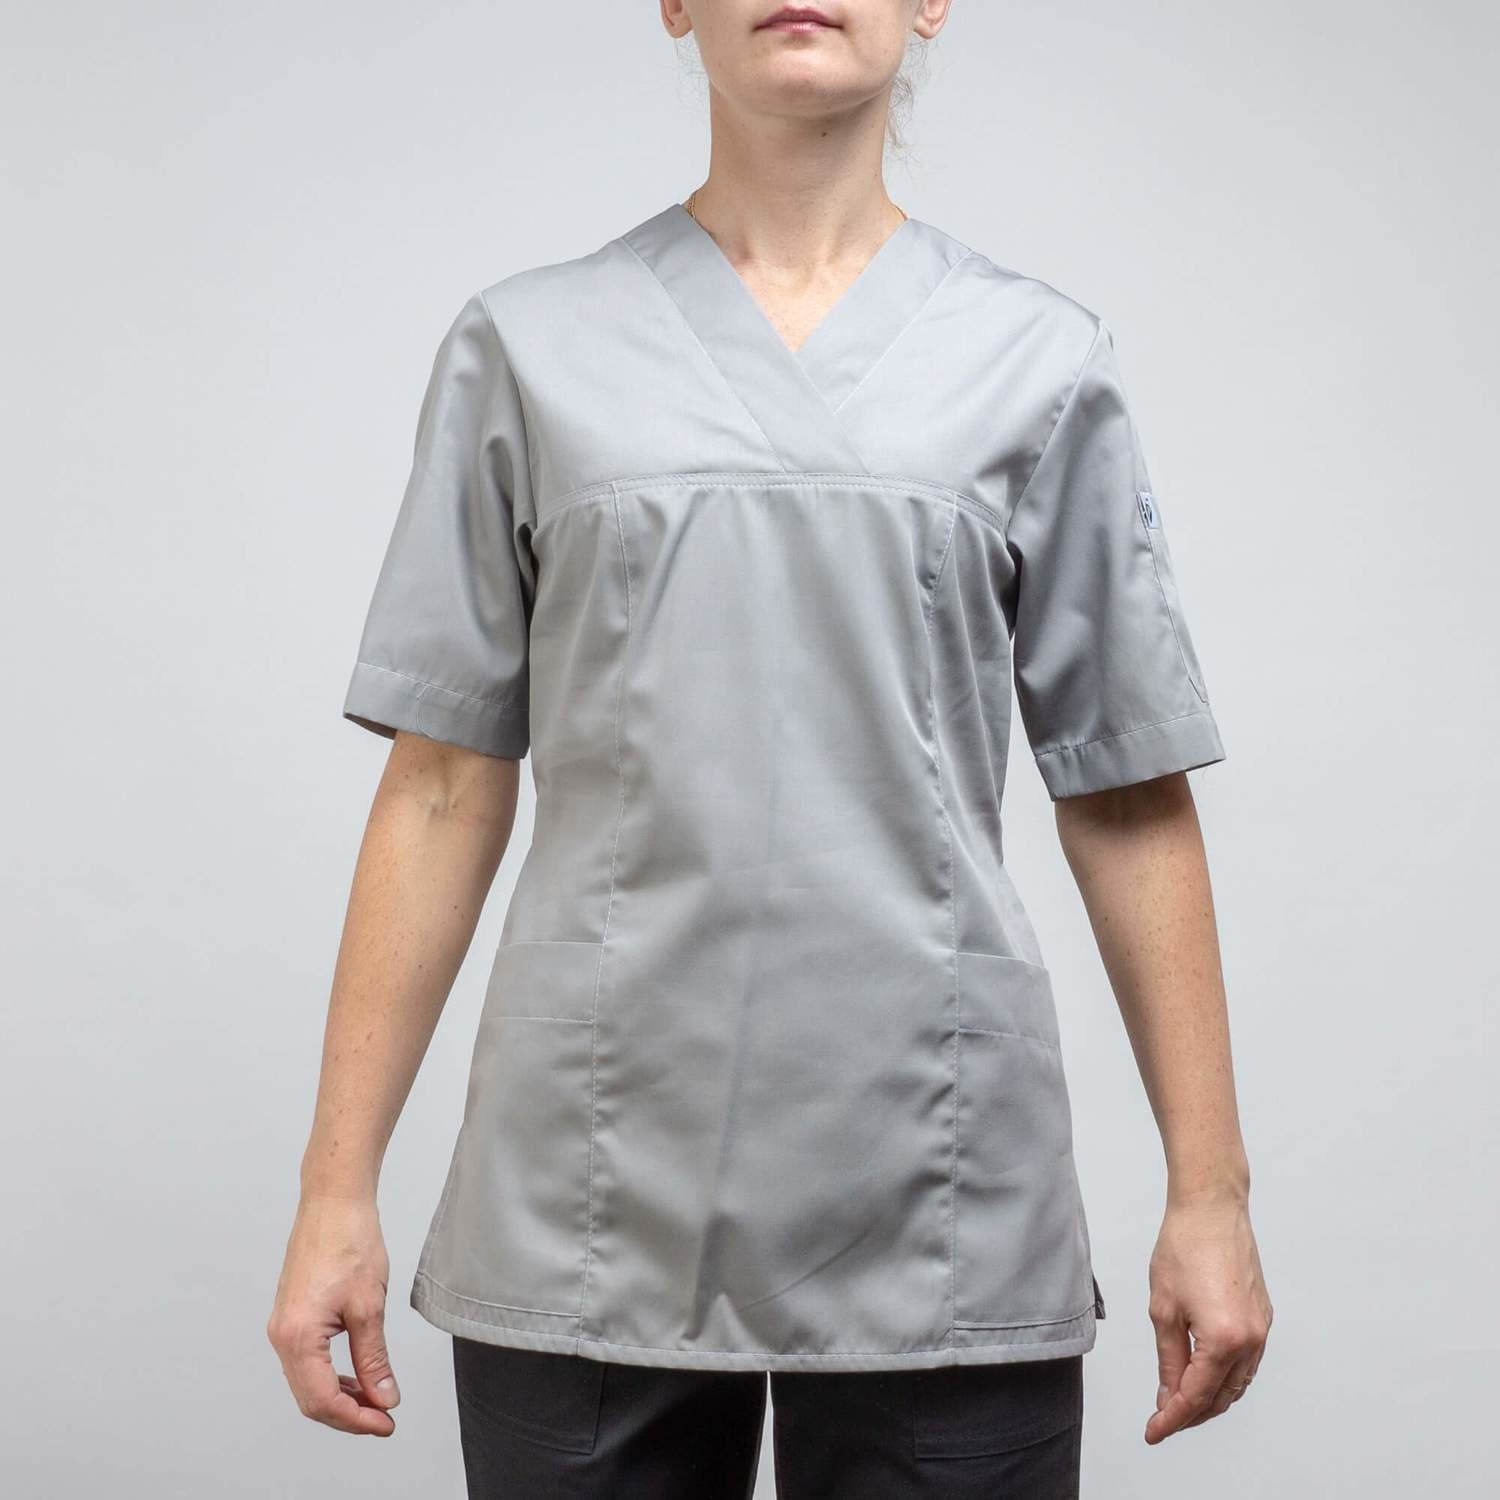 570GRS2 - CHEF'S TUNIC